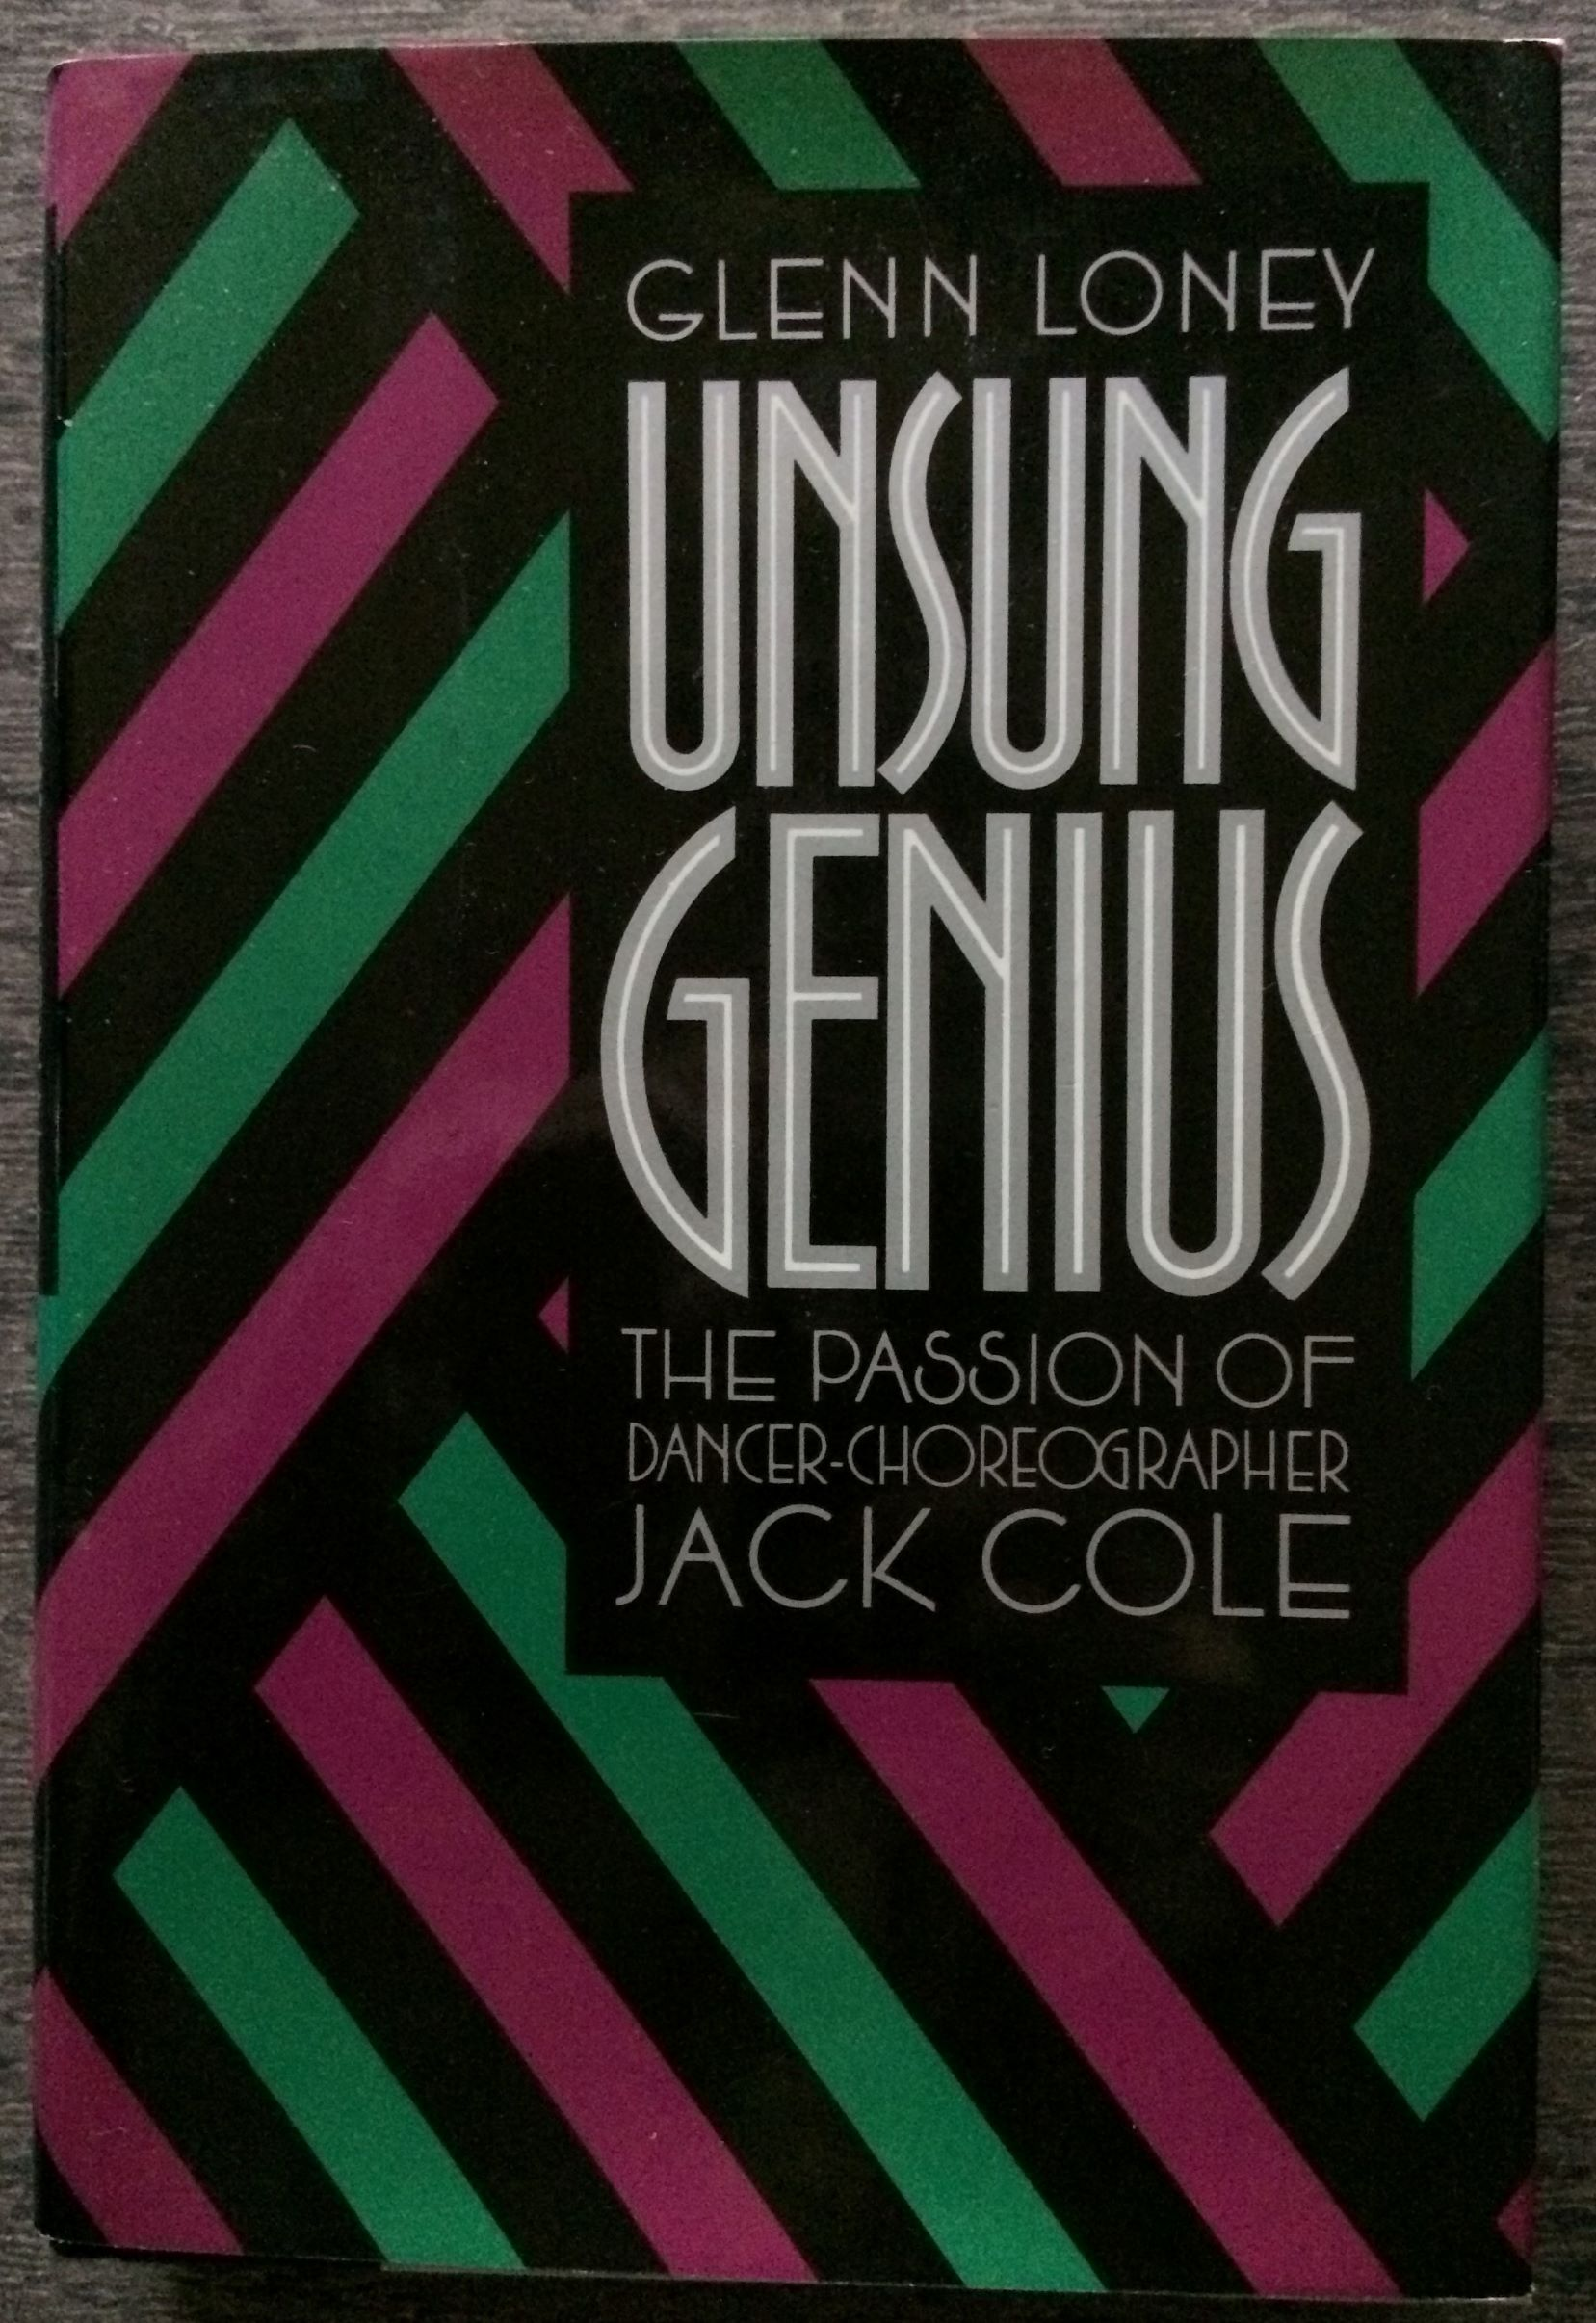 Image for Unsung Genius, The Passion of Dancer-Choreographer Jack Cole.